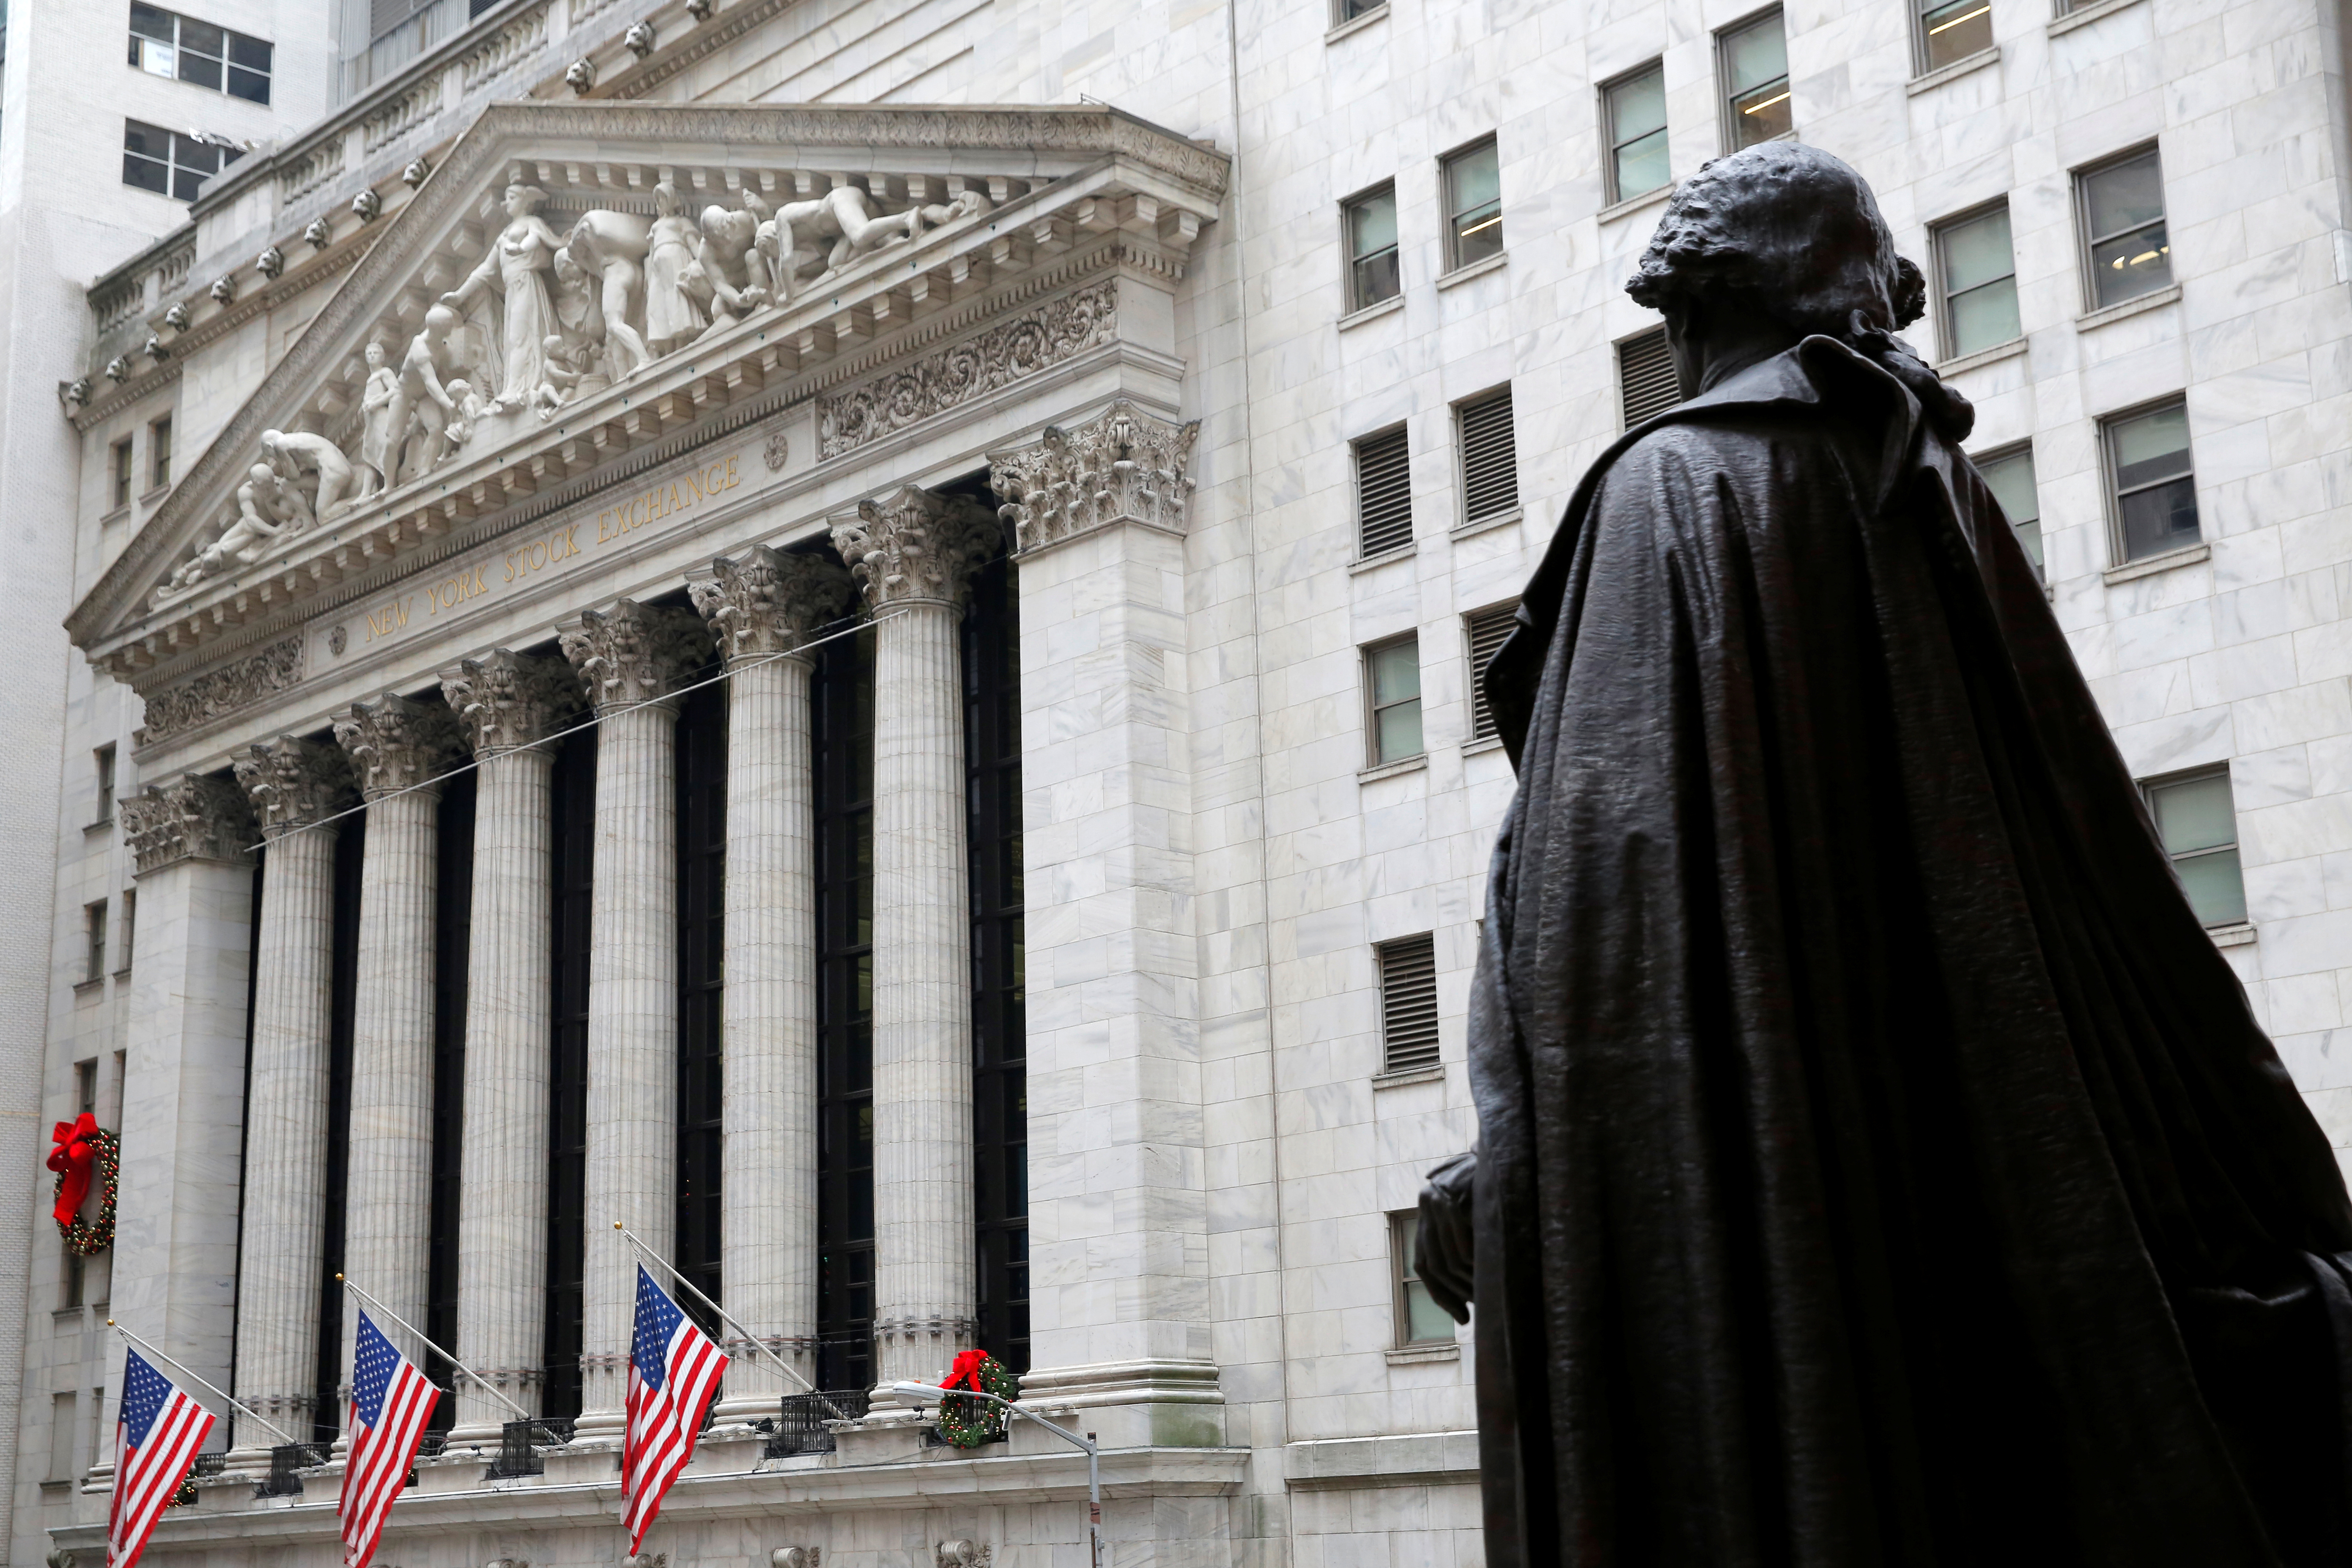 A statue of George Washington stands across from the New York Stock Exchange in Manhattan, New York City, U.S., December 21, 2016.